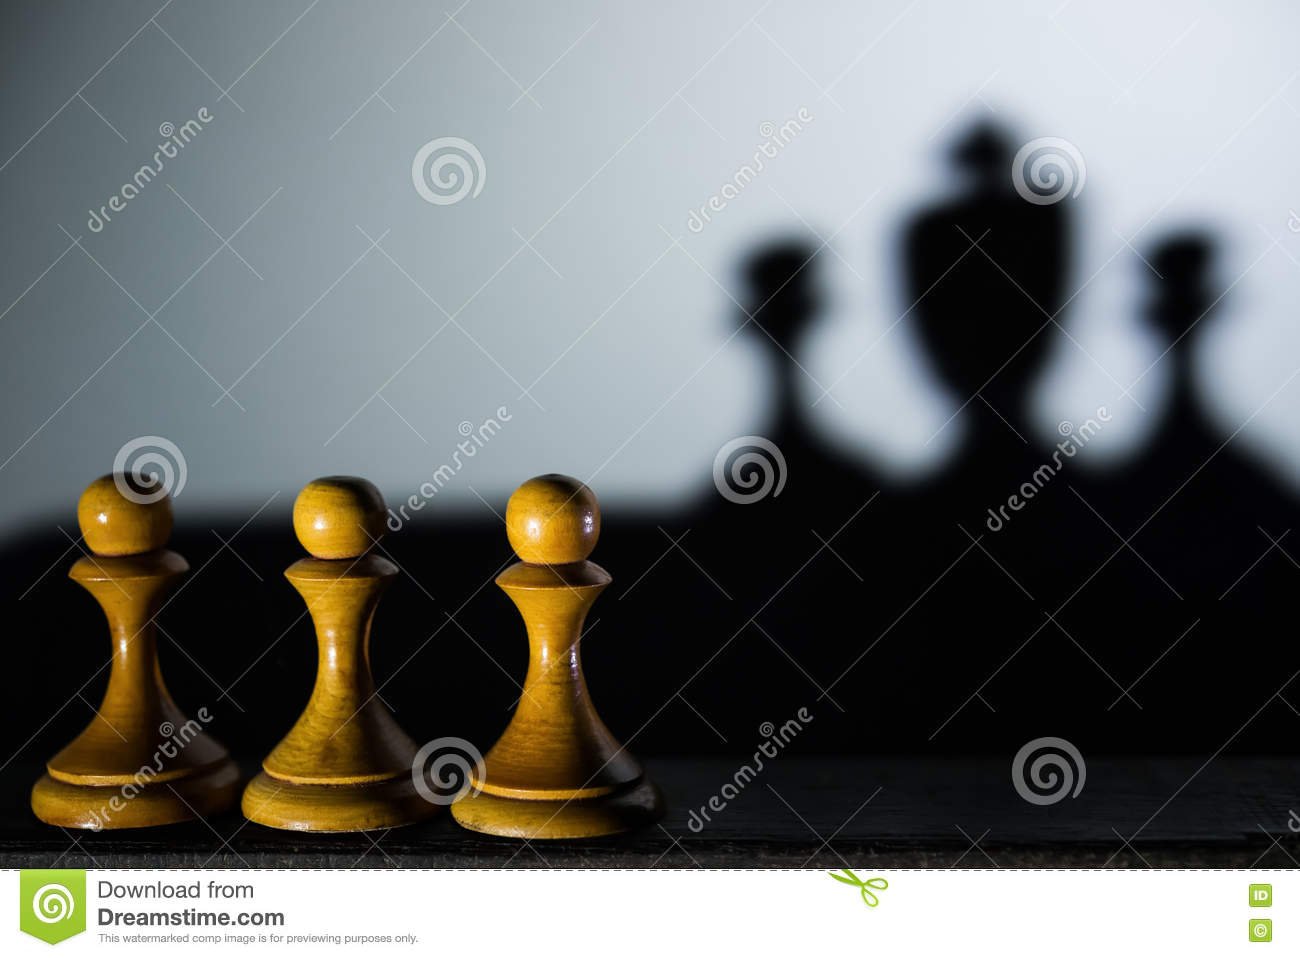 Three chess pawn with one casting a king piece shadow in dark concept of strength & aspirations